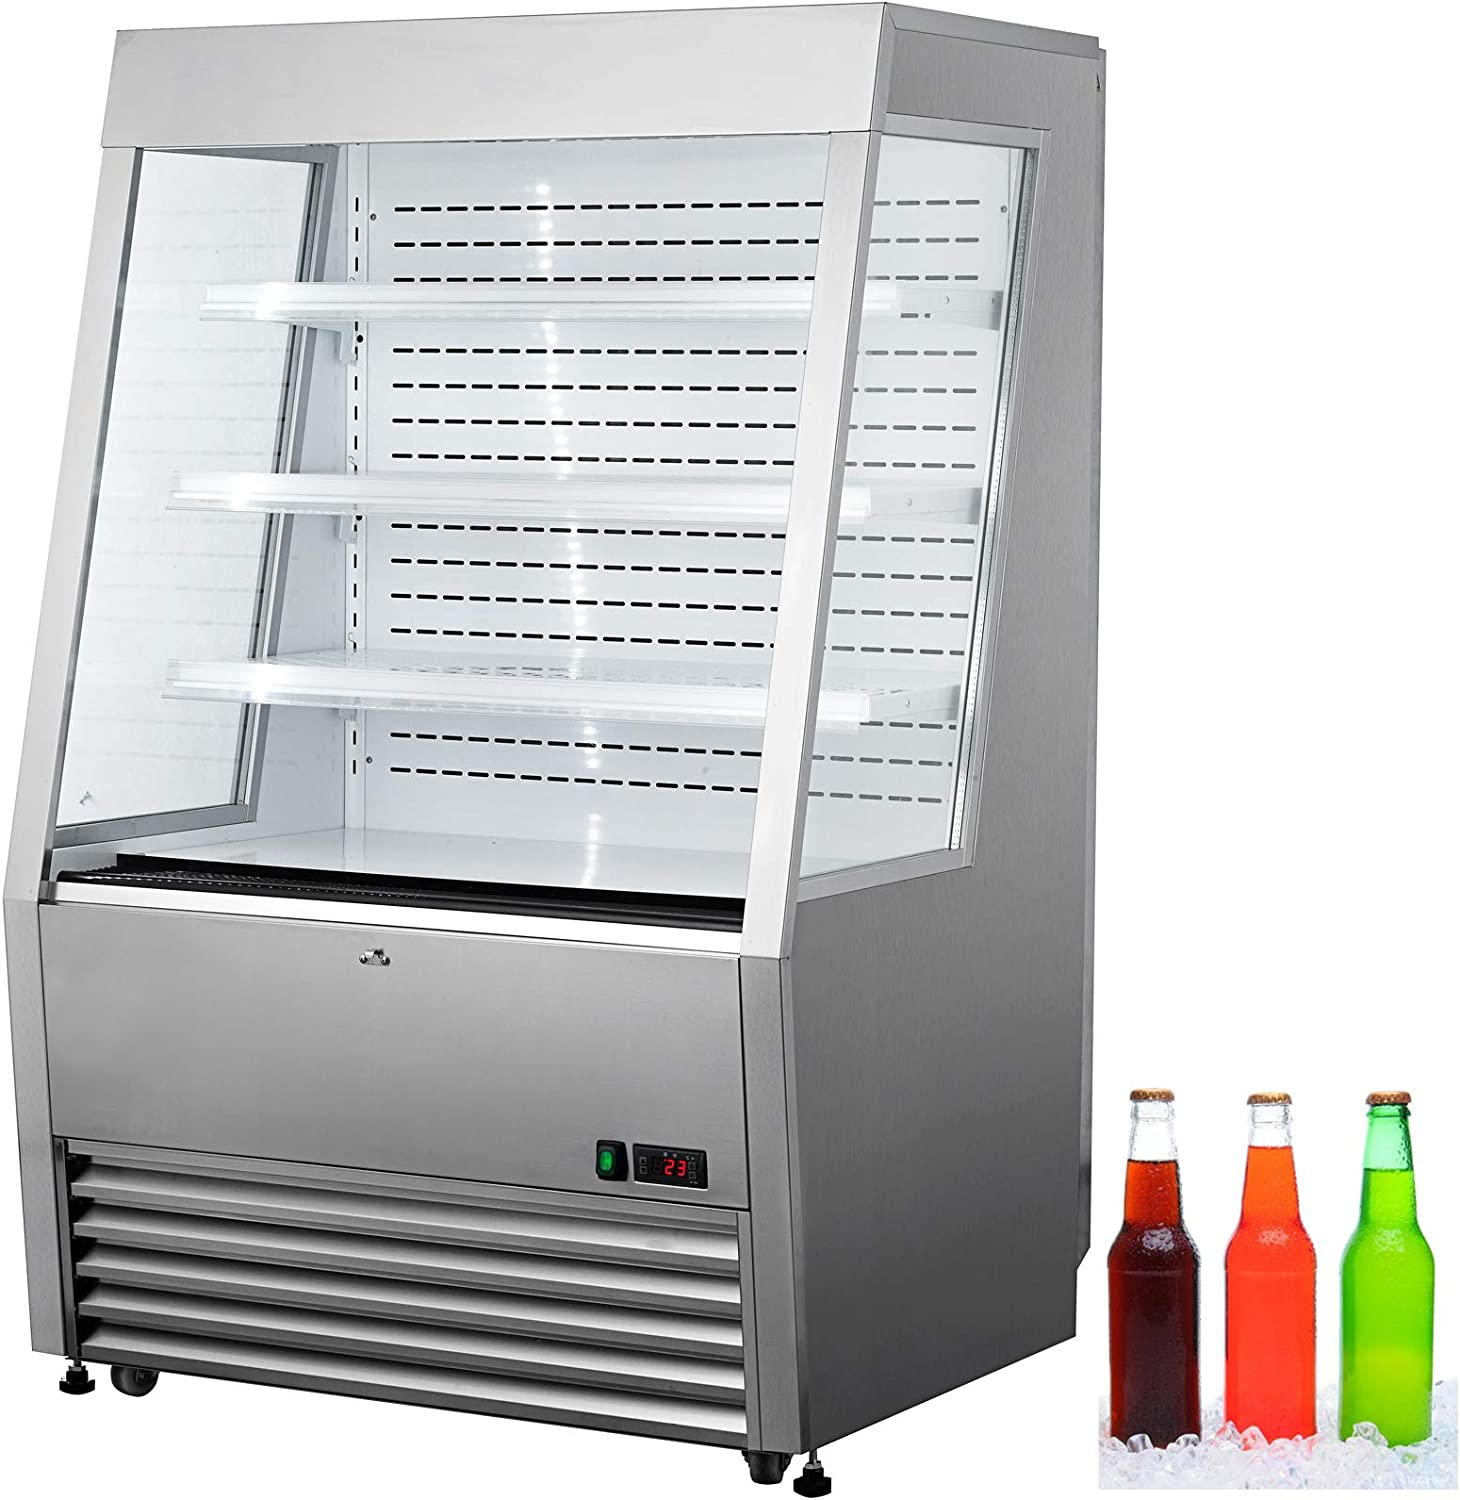 VBENLEM 36 inchs Stainless Steel Intelligent Self Contained Open Refrigerated Display Case 390L Commercial Display Cooler Case with LED Light Suit for Shop Supermarket Restaurant